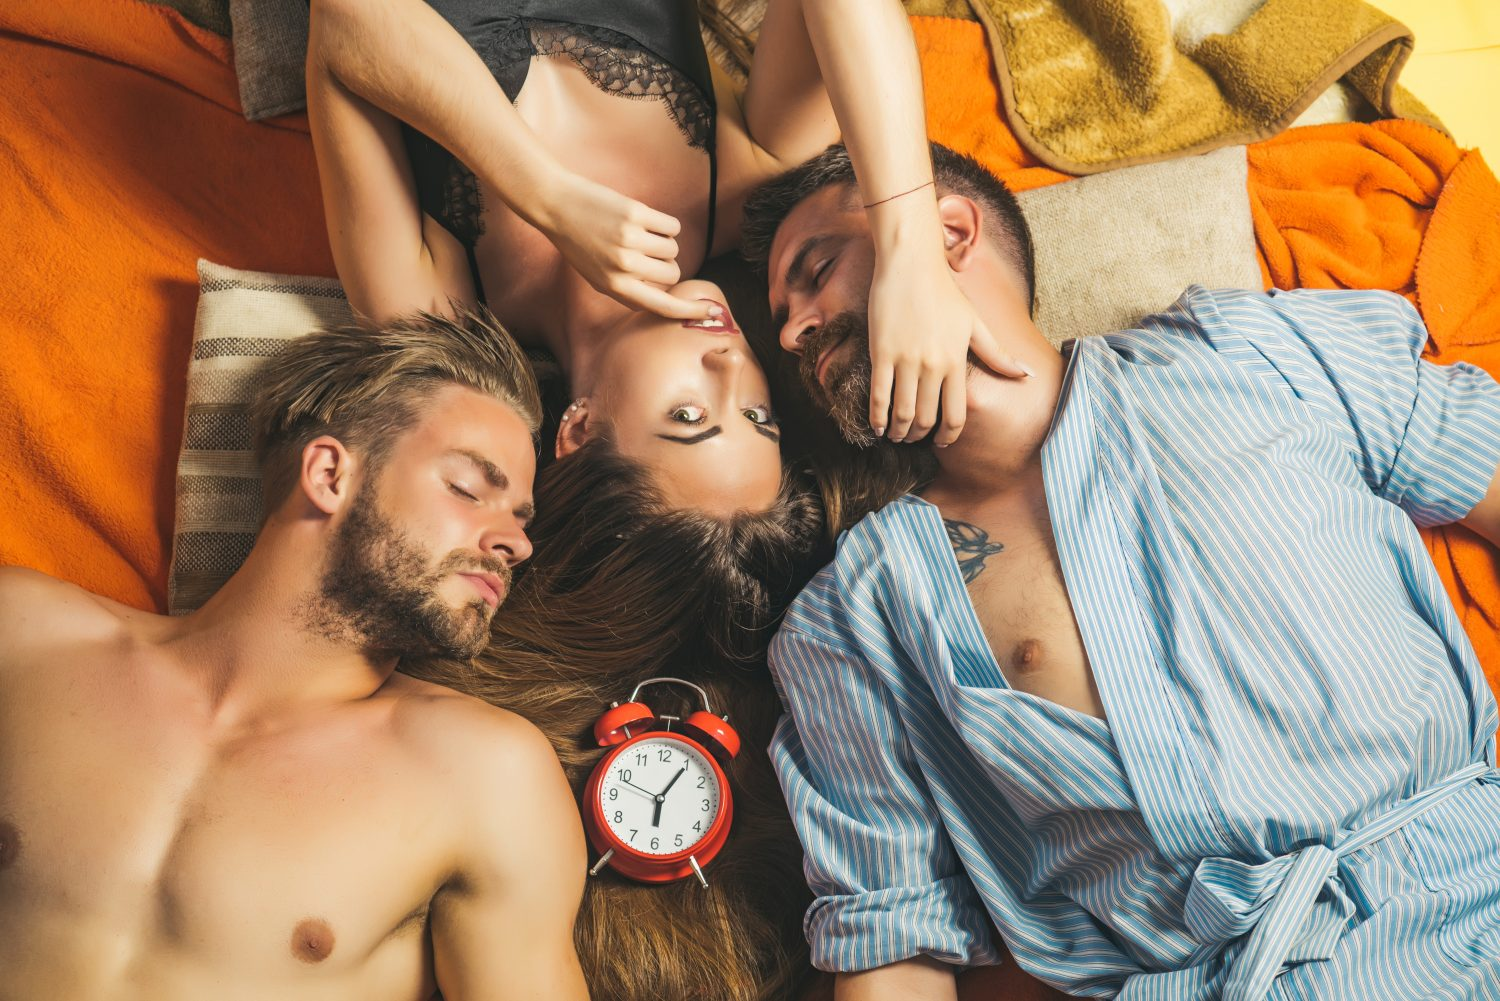 Throuple Relationships: 25 Tips For A Awesome Threesome Romance